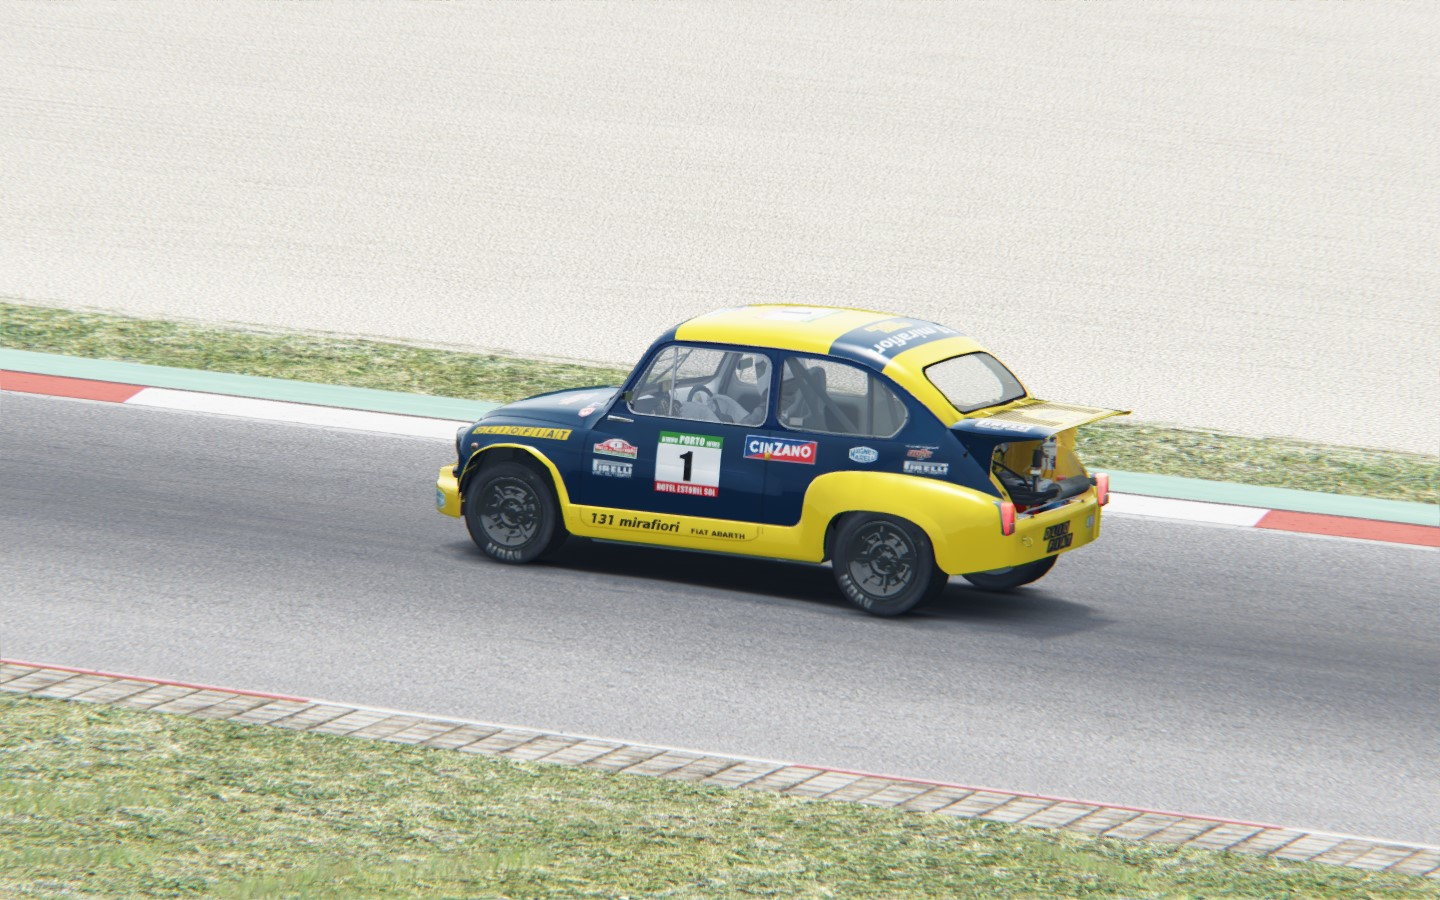 Screenshot_abarth_1000tc_ks_nordschleife_22-1-116-23-8-39.jpg